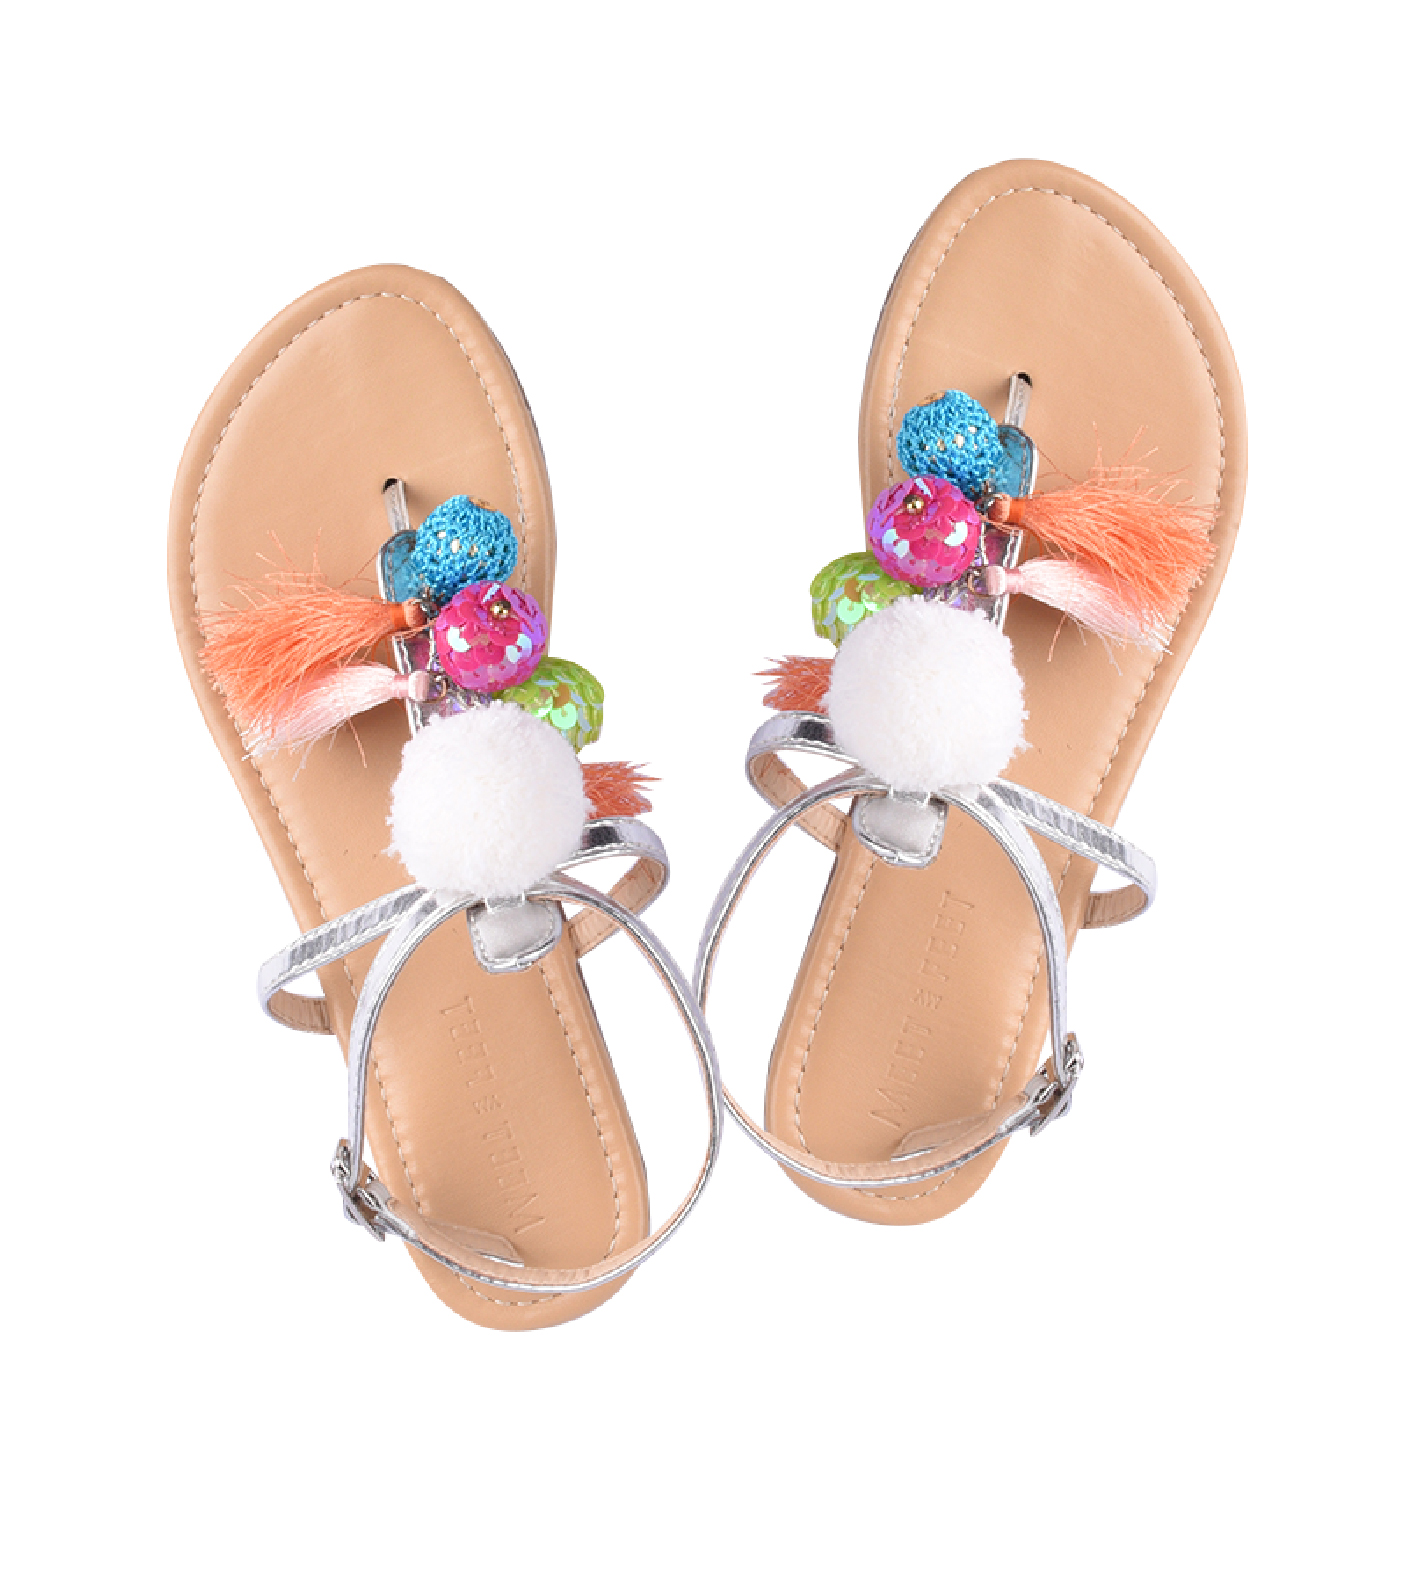 Lila Sandals for Girls (Kids) - Silver by Meet My Feet | 30